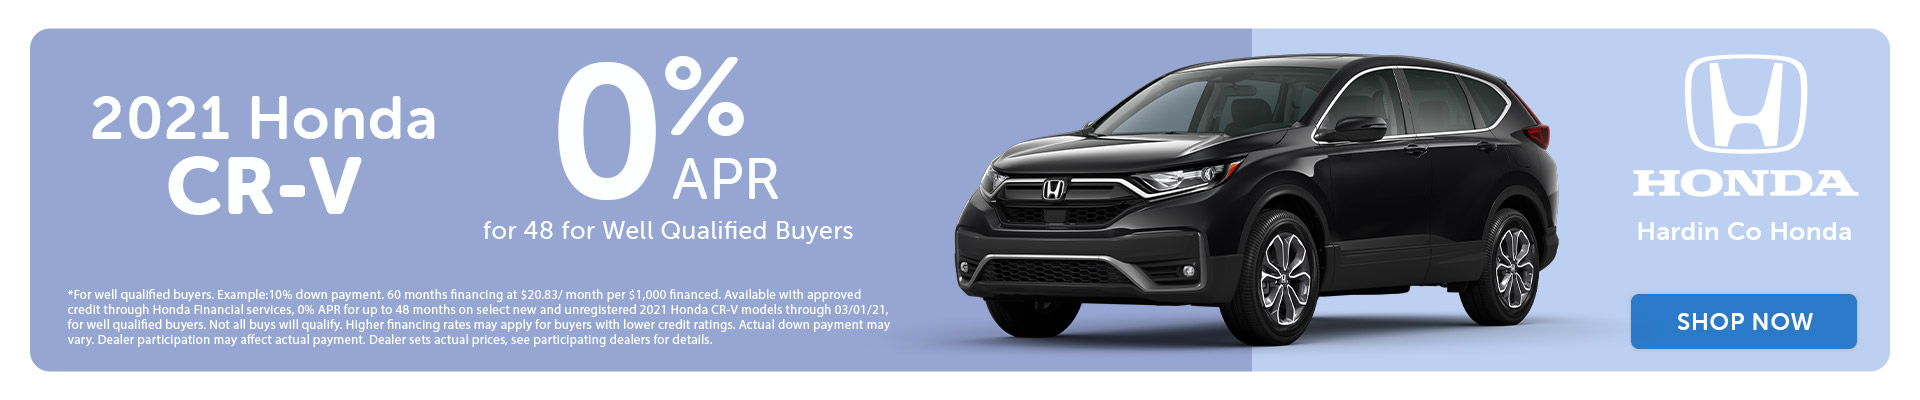 0% APR - 2021 Honda CR-V